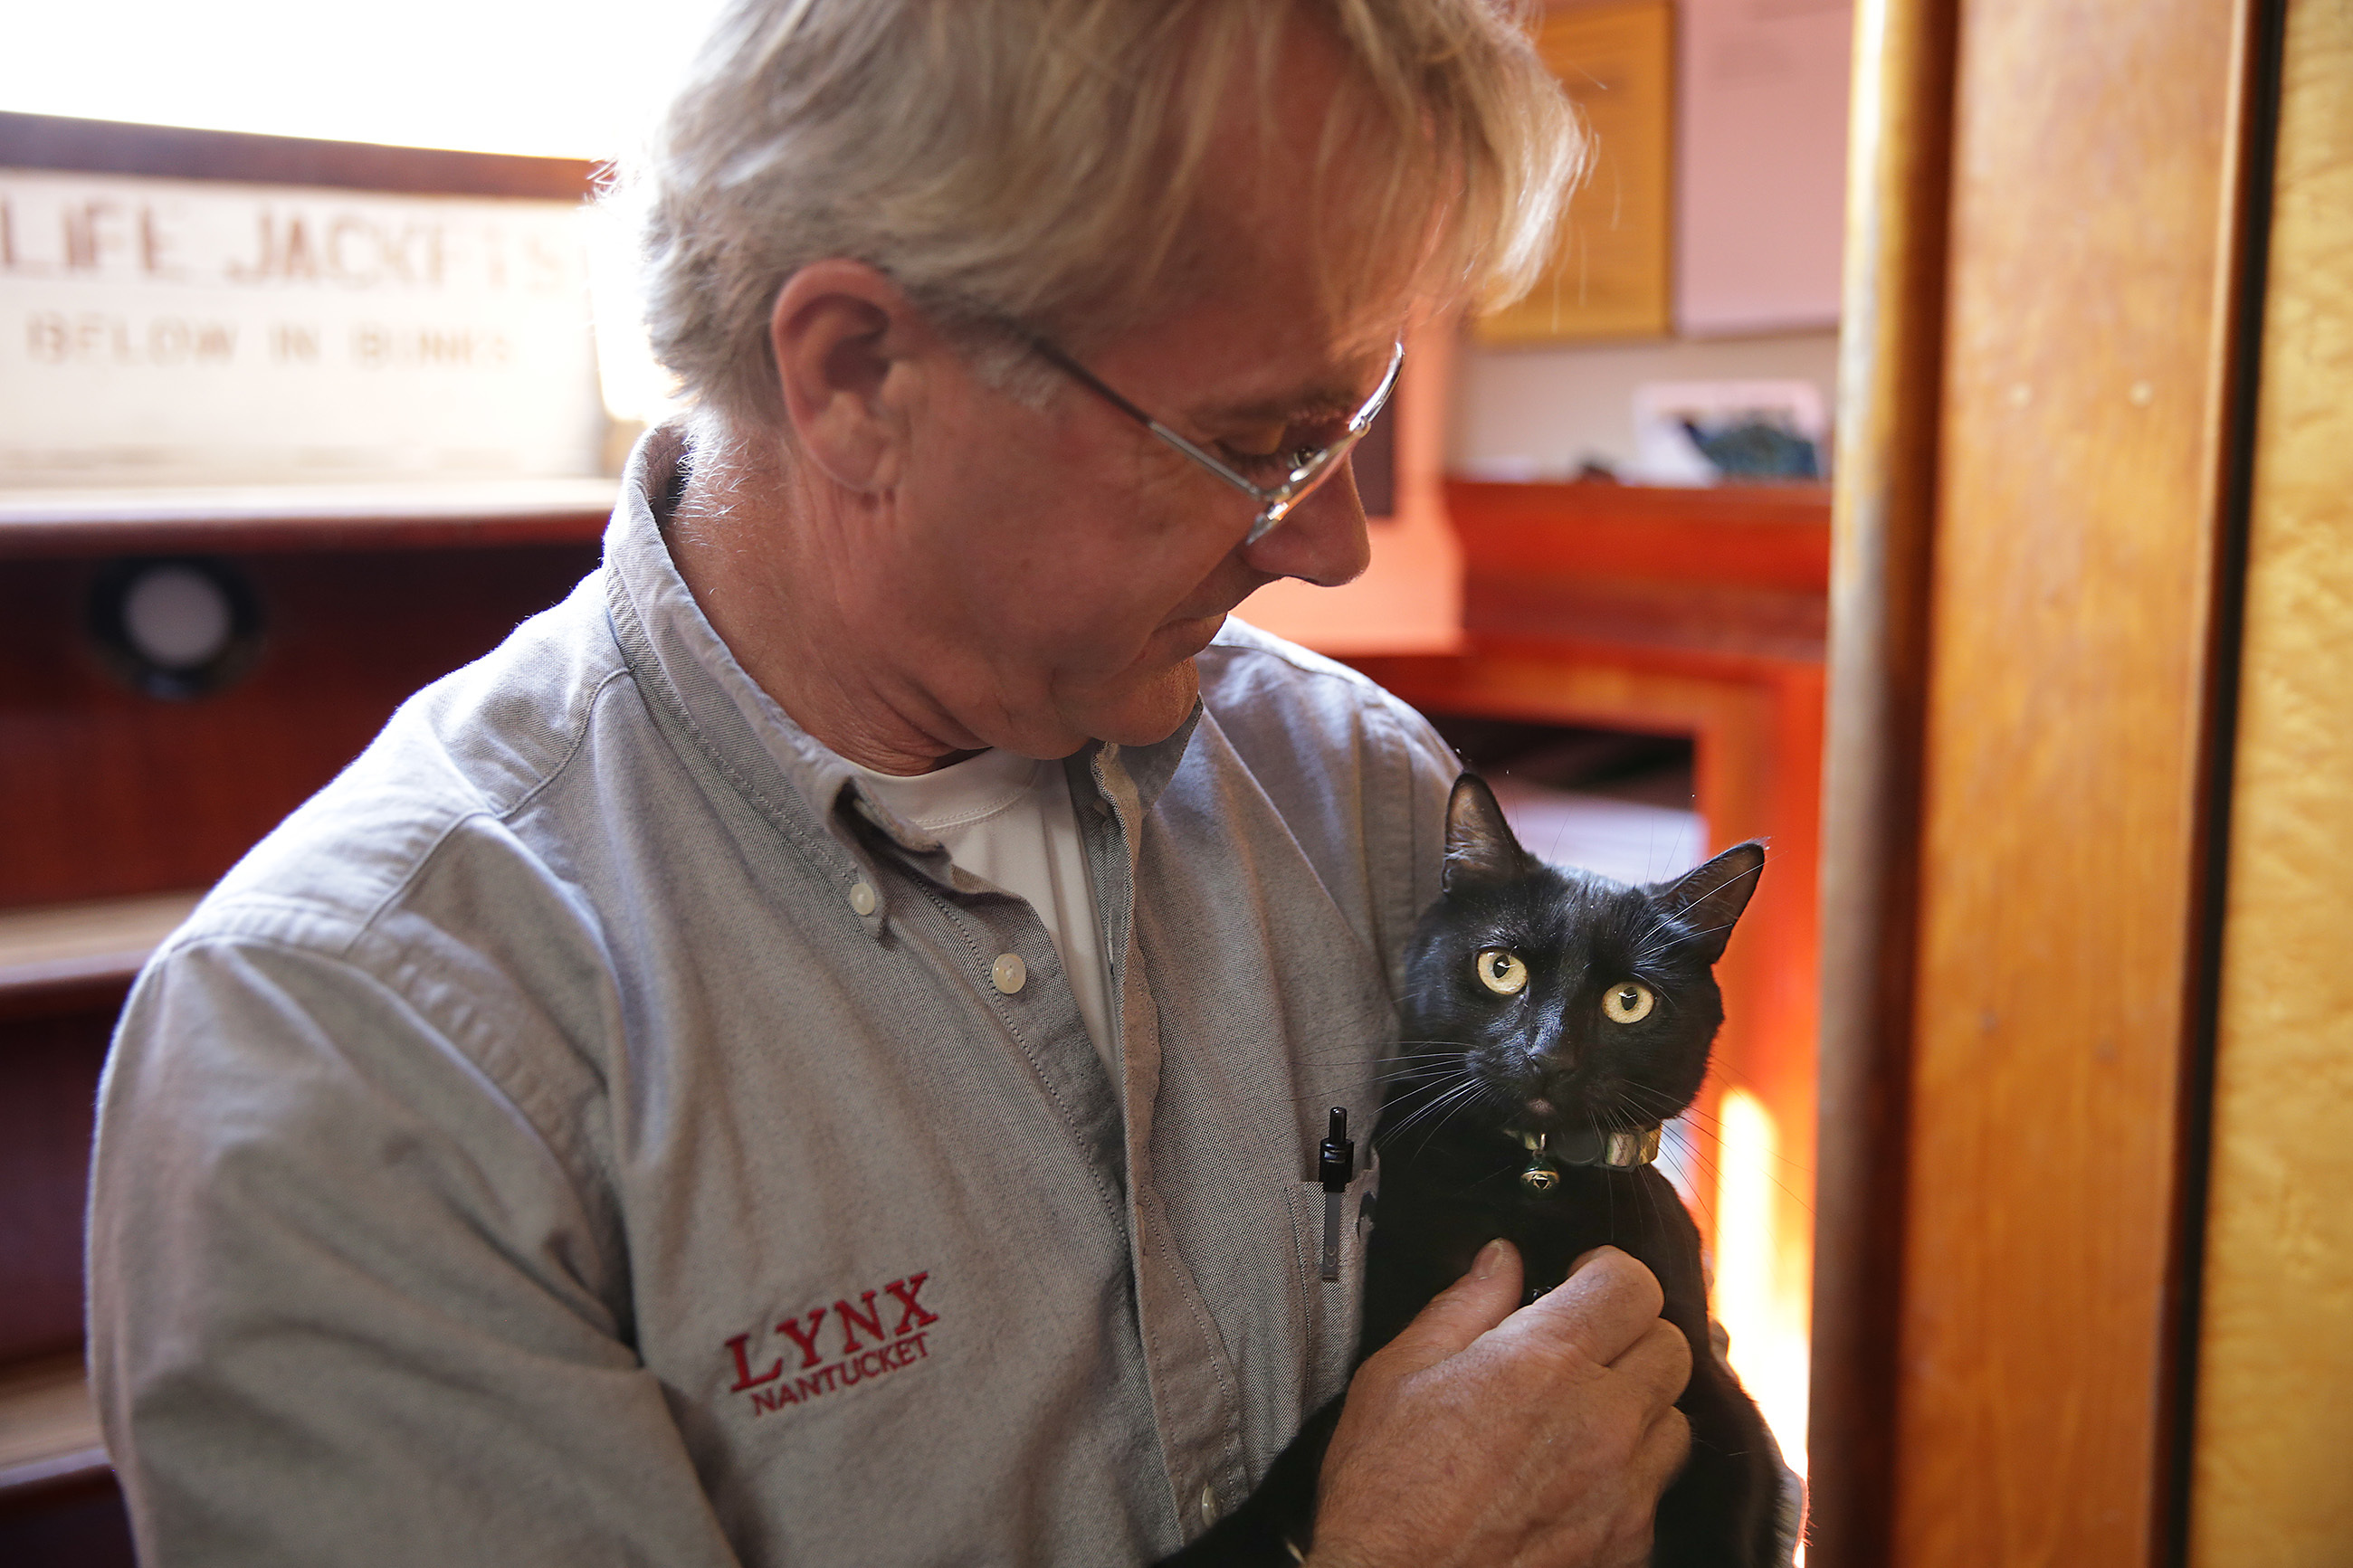 Capt. Donald Peacock, holds Leeloo, the ship's cat, below the deck on the Lynx tall ship at Penn´s Landing